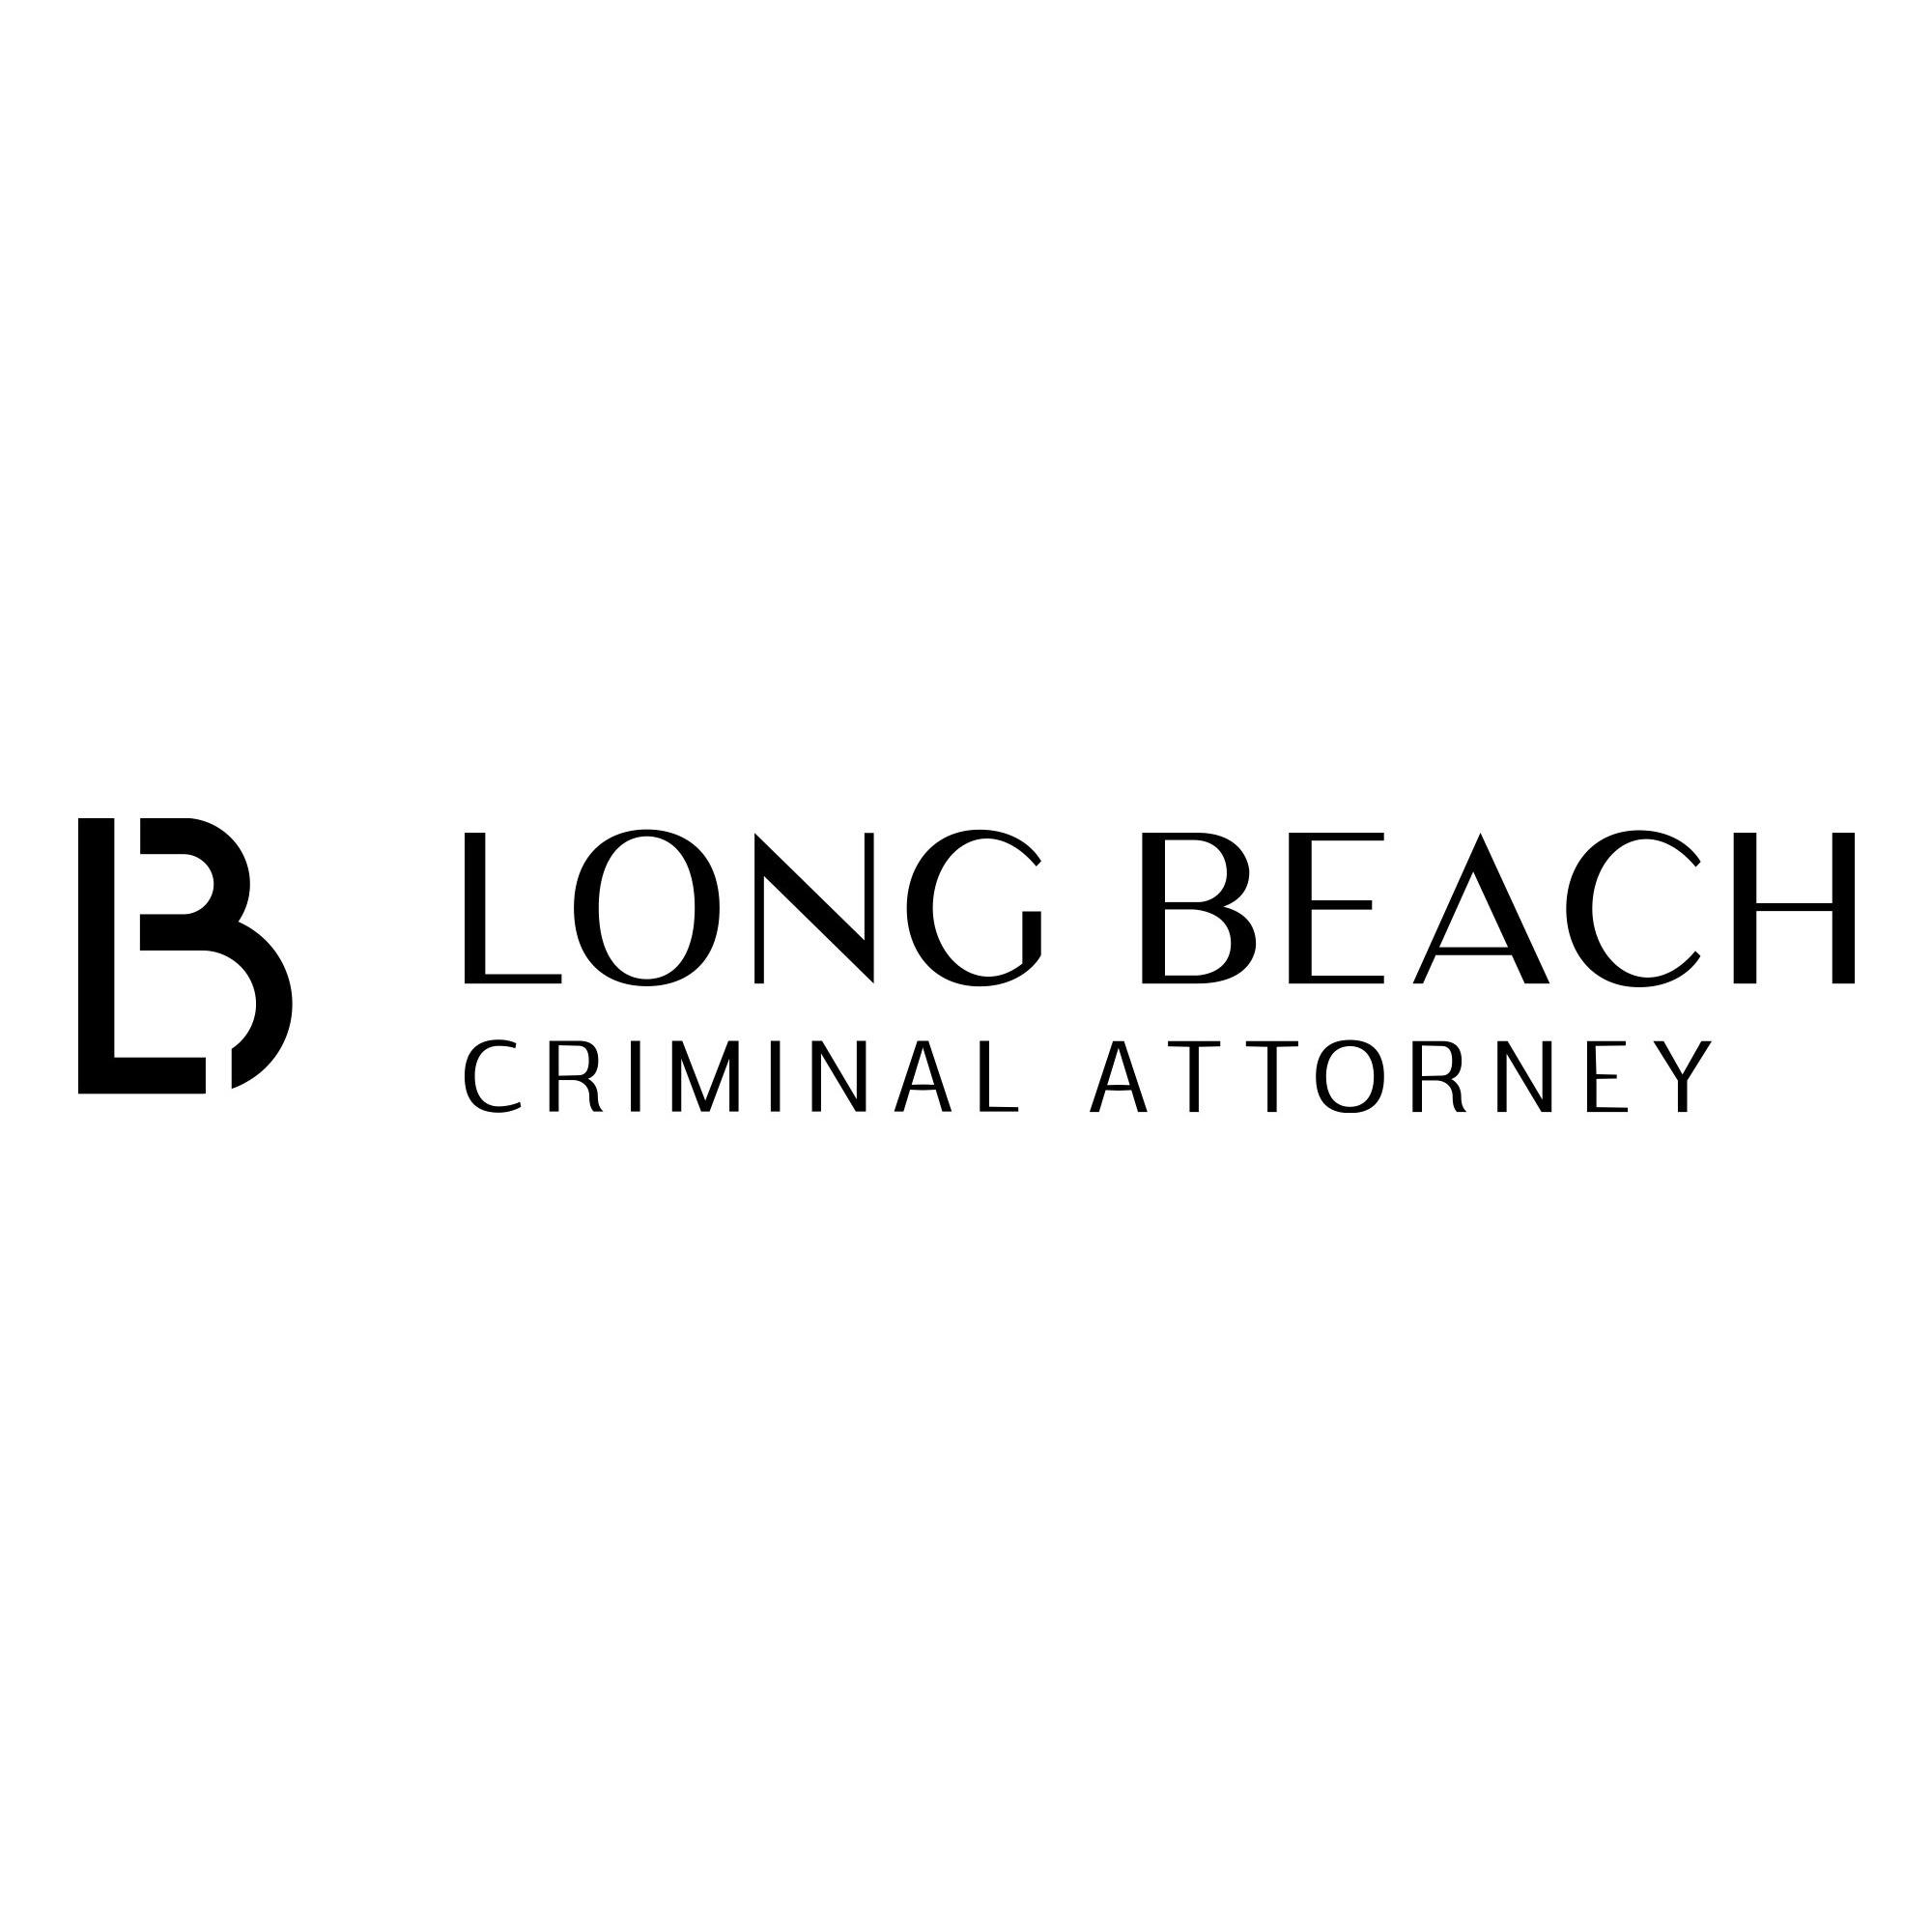 Long Beach Criminal Attorney